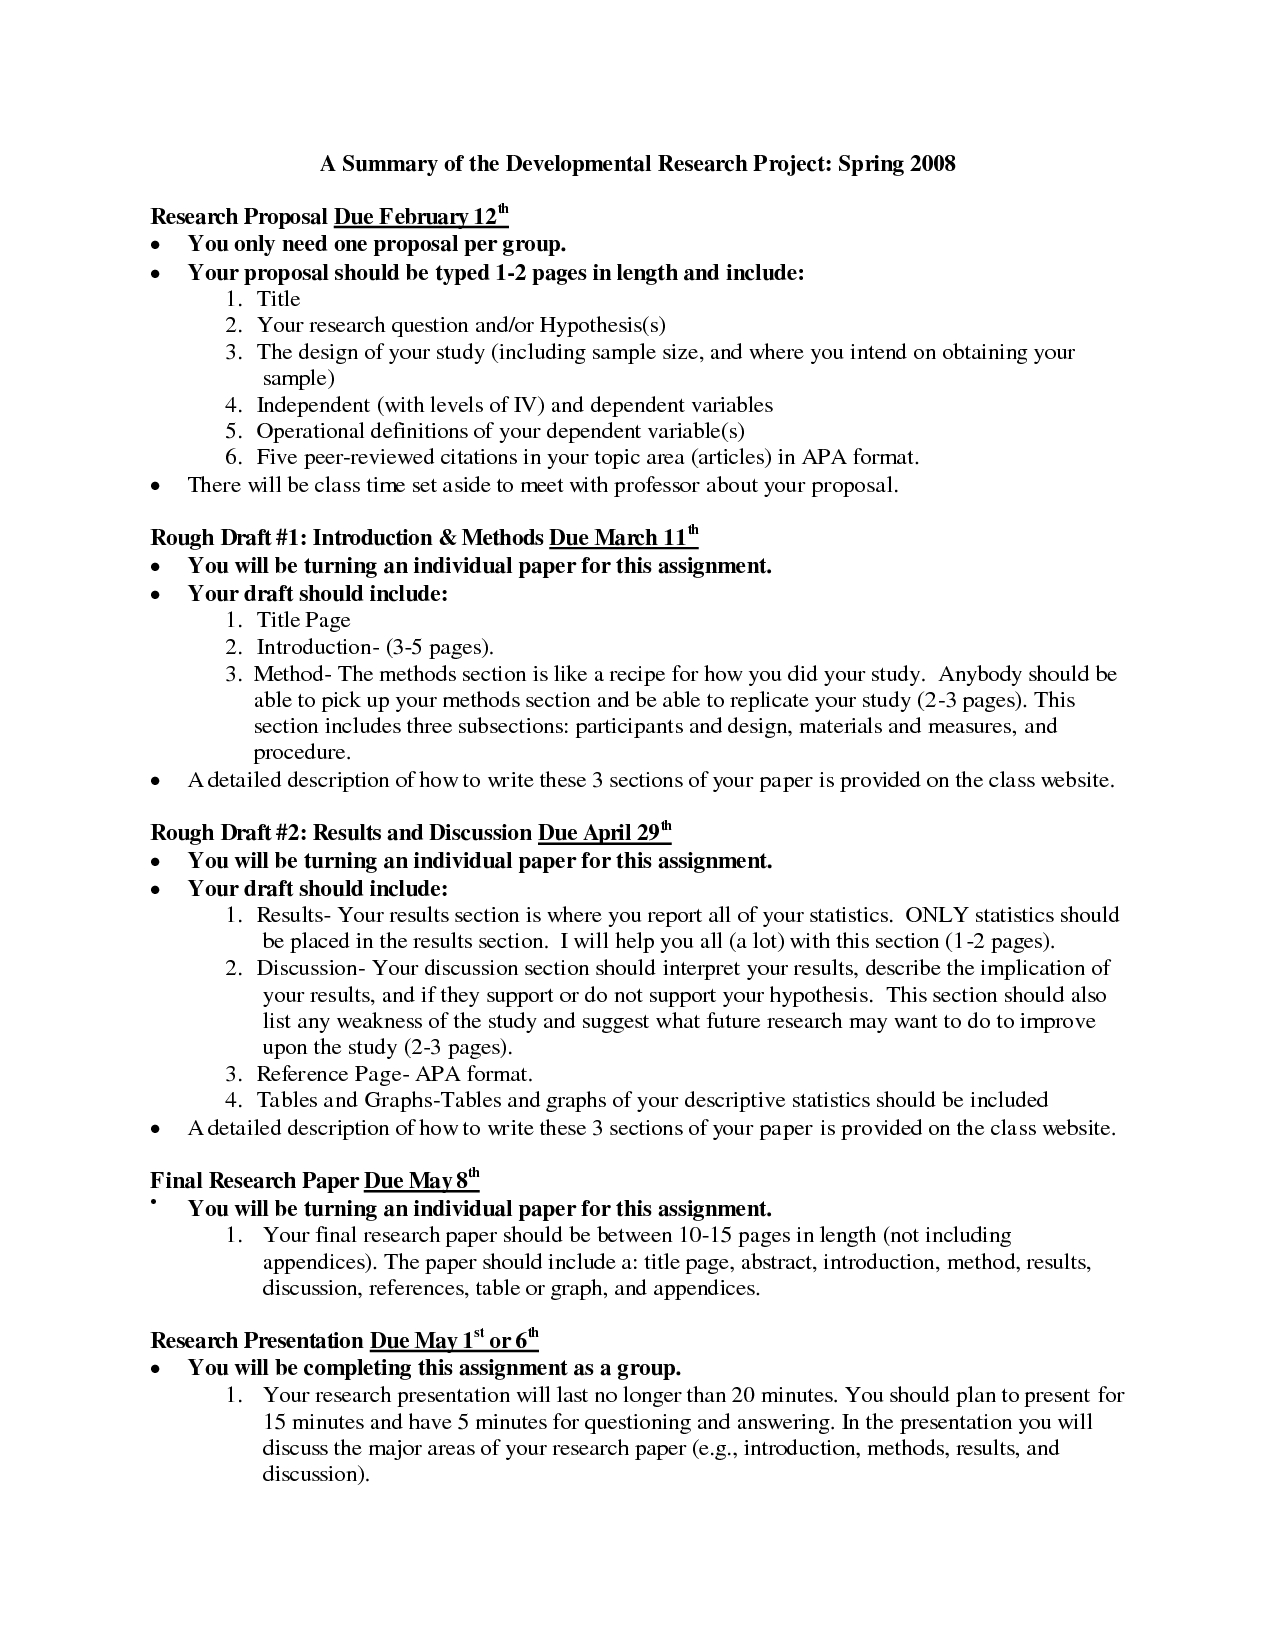 007 Topics To Write Researchs On Psychology Undergraduate Resume Unique Sample Of Magnificent Research Papers Good An Argumentative Paper Your A History Full